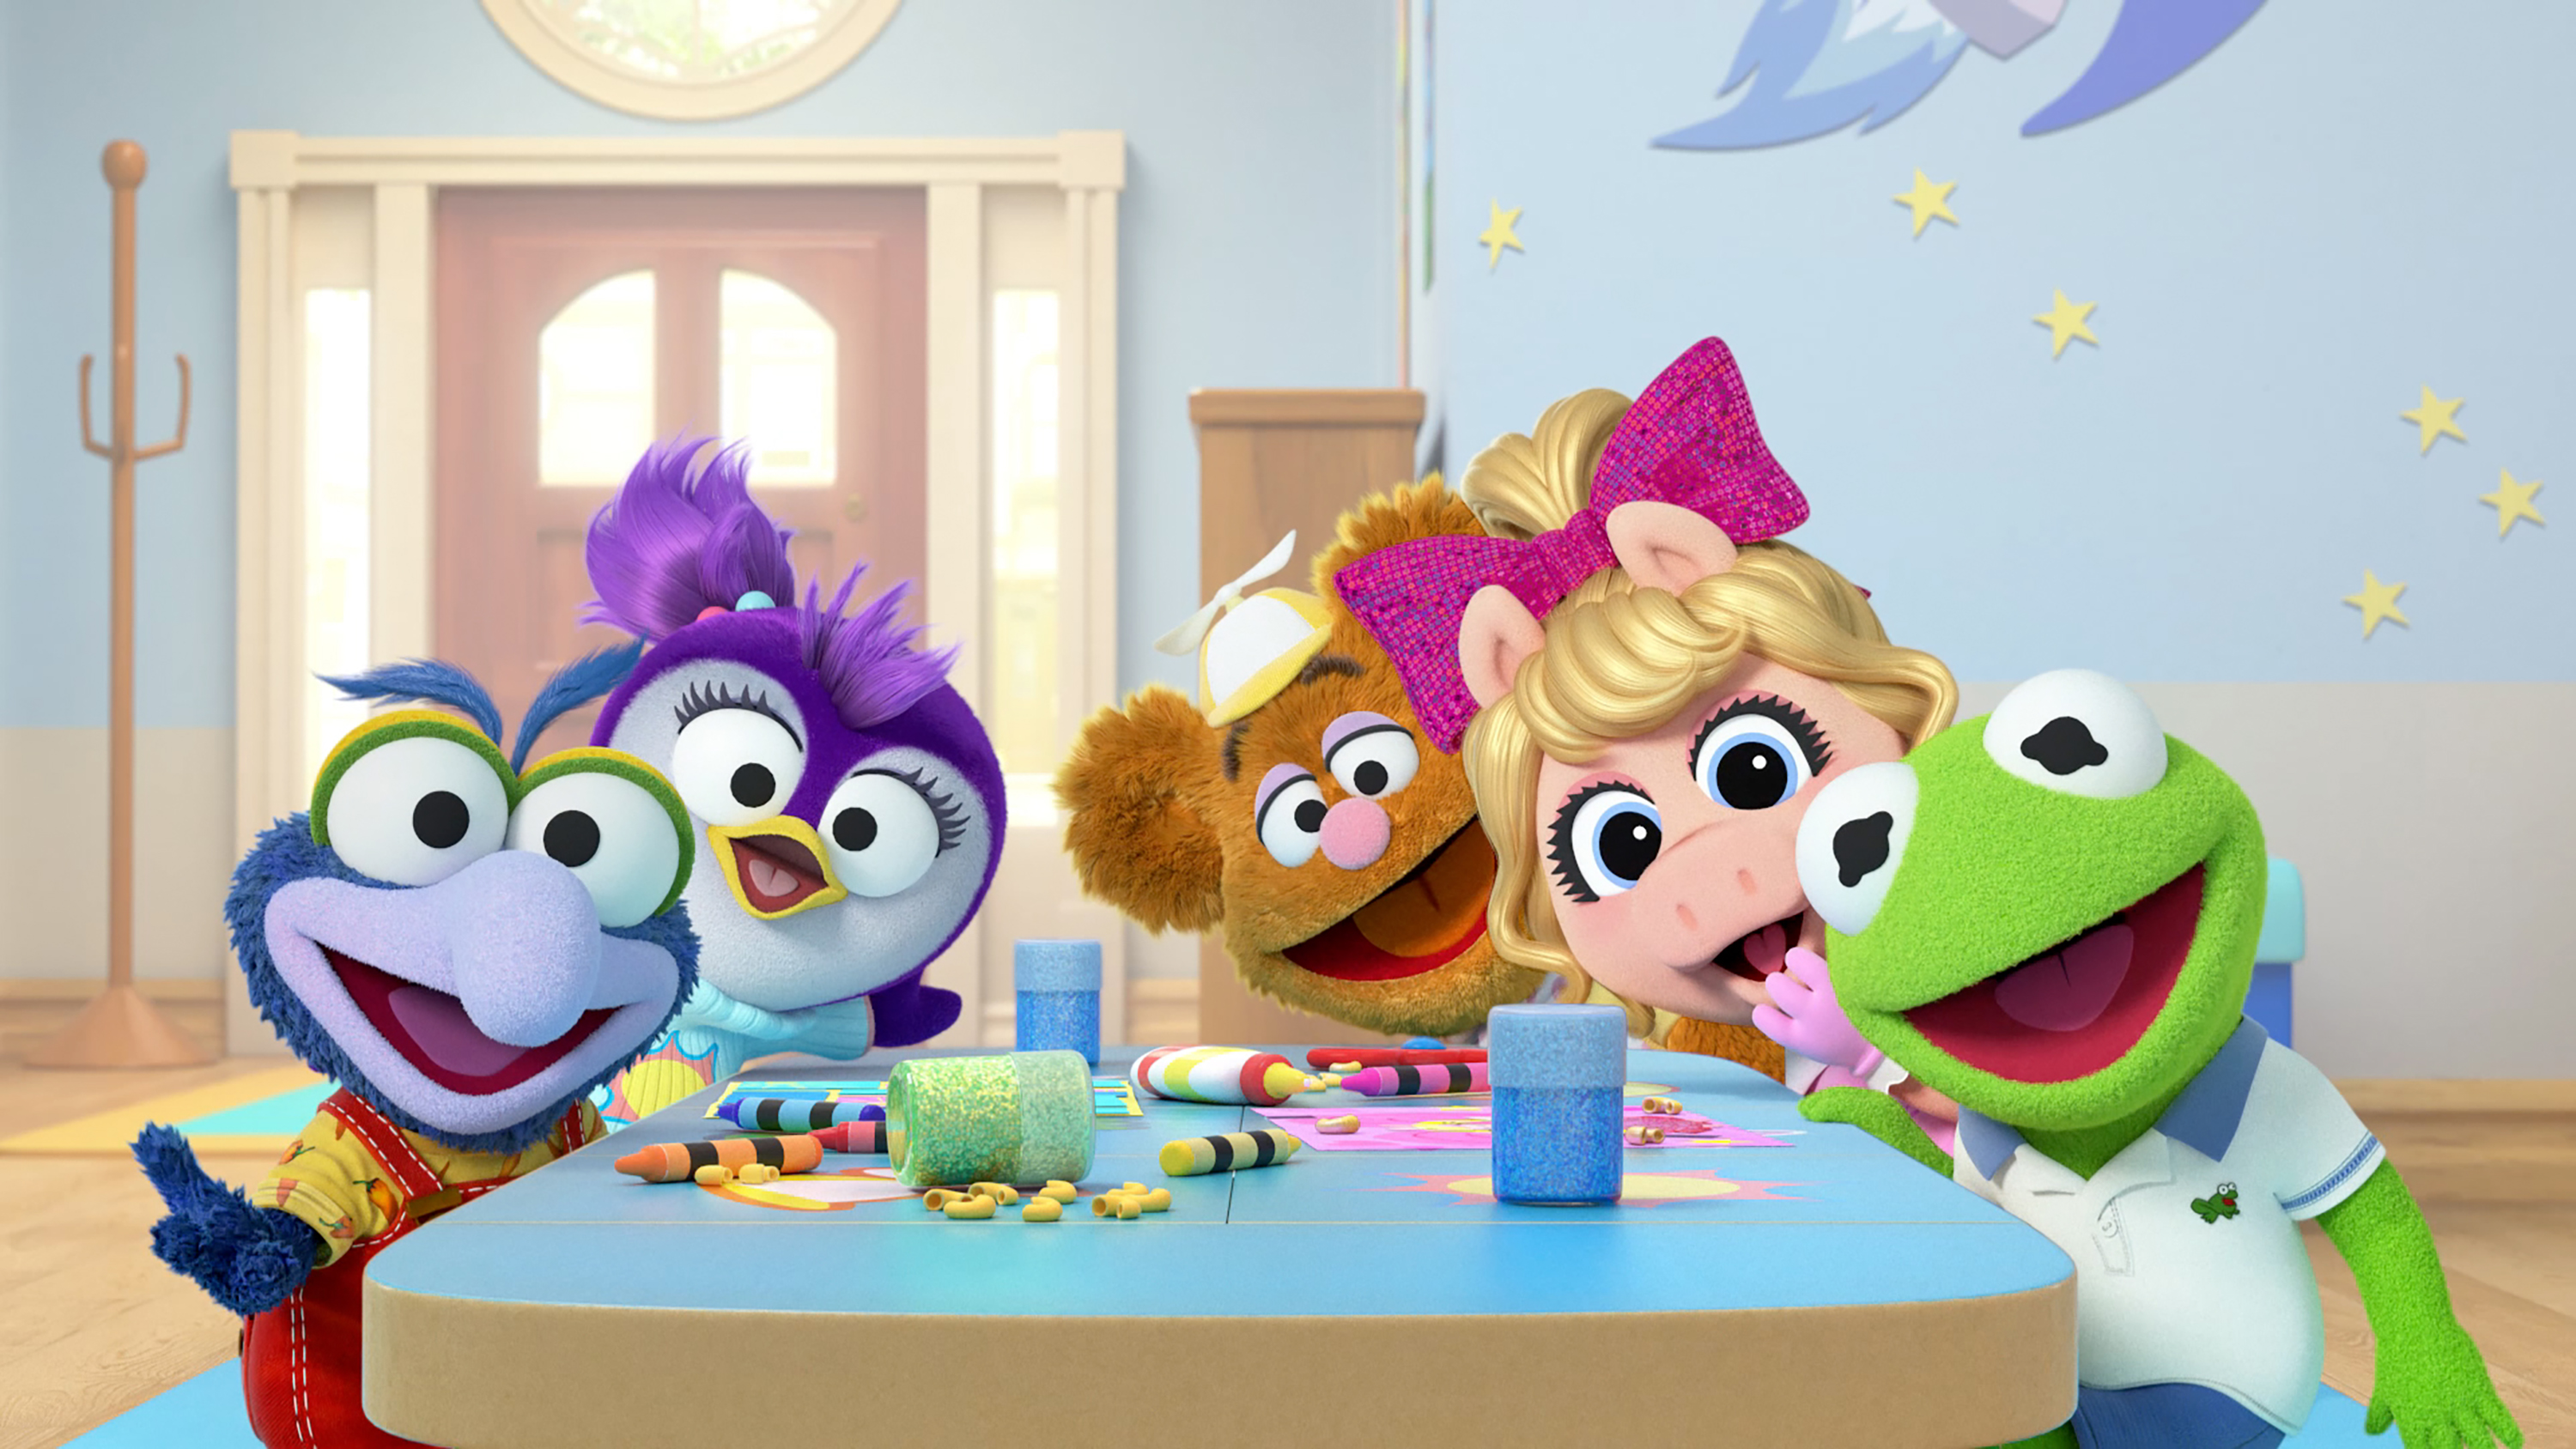 Whatever Happened to Summer Penguin? – New Muppet Babies Show Premieres